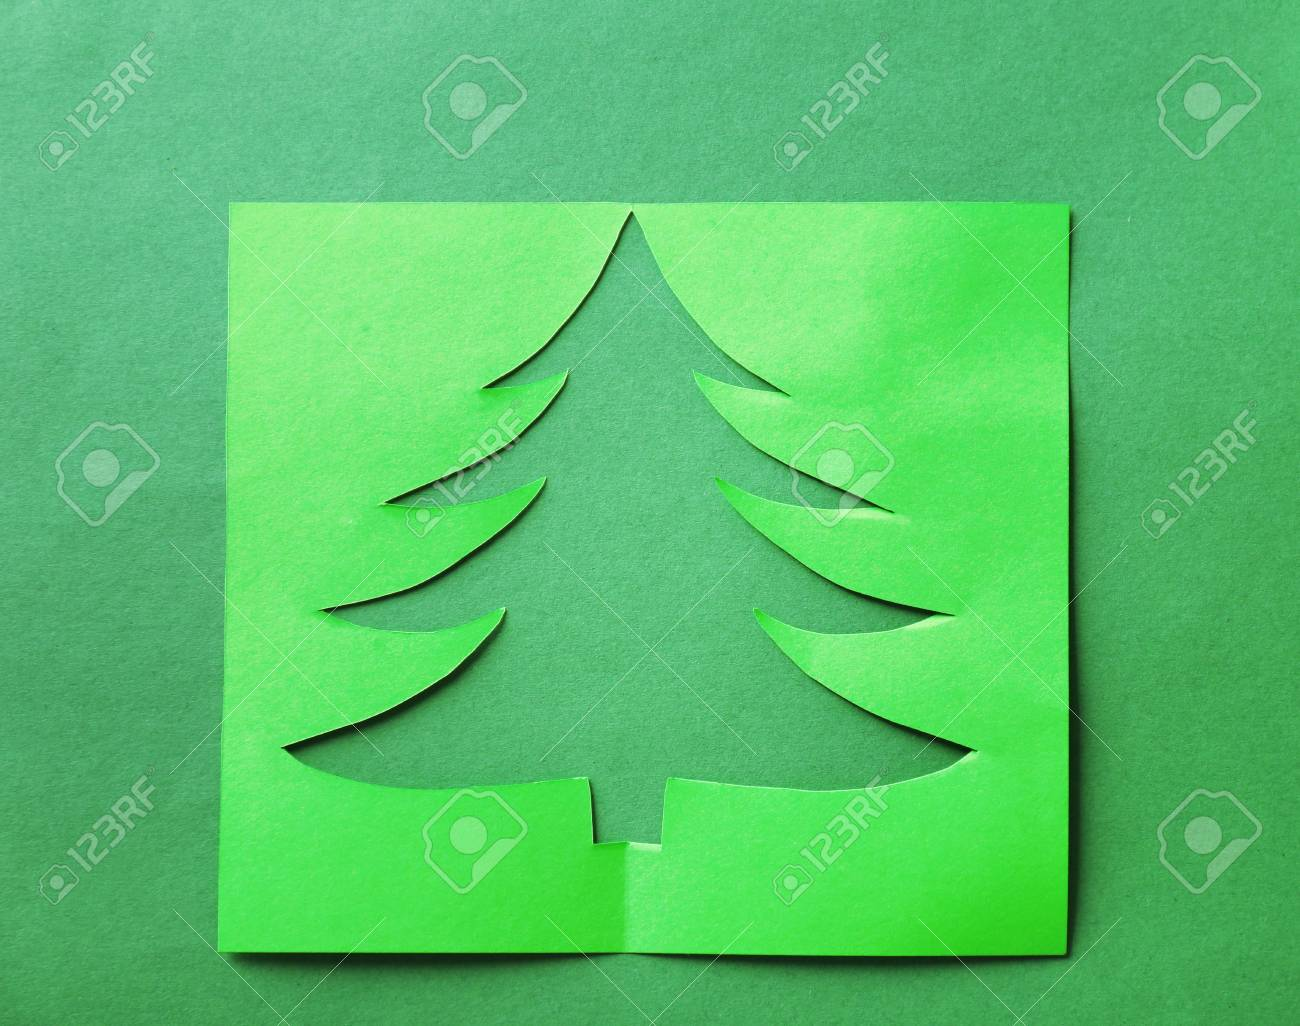 Sheet Of Paper With Cut Out Christmas Tree On Color Background Stock Photo